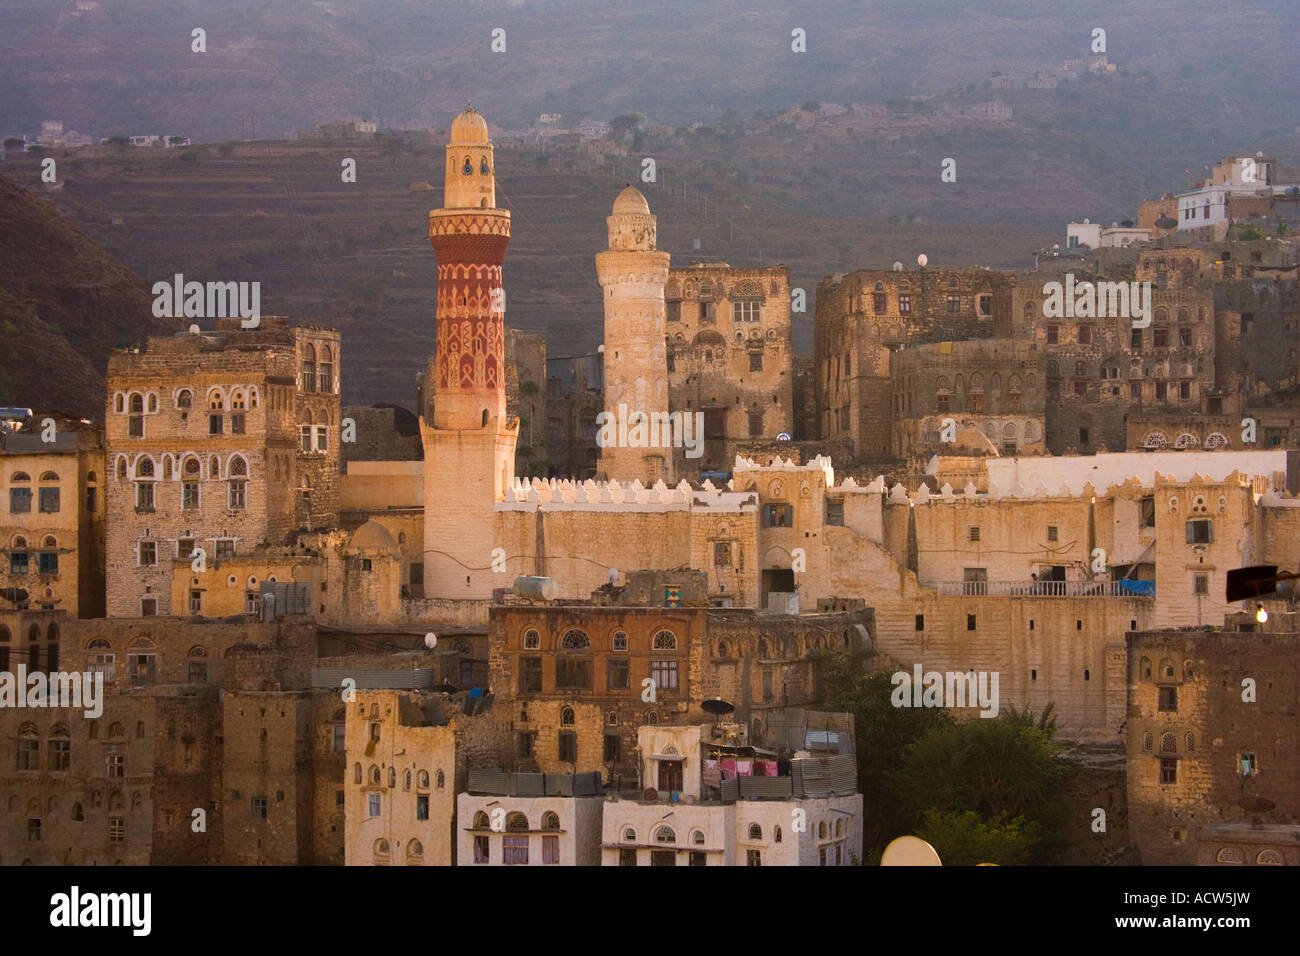 The minaret of Queen Arwa Mosque rises among the building in the mountain village of Jibla near Taizz Yemen - Stock Image